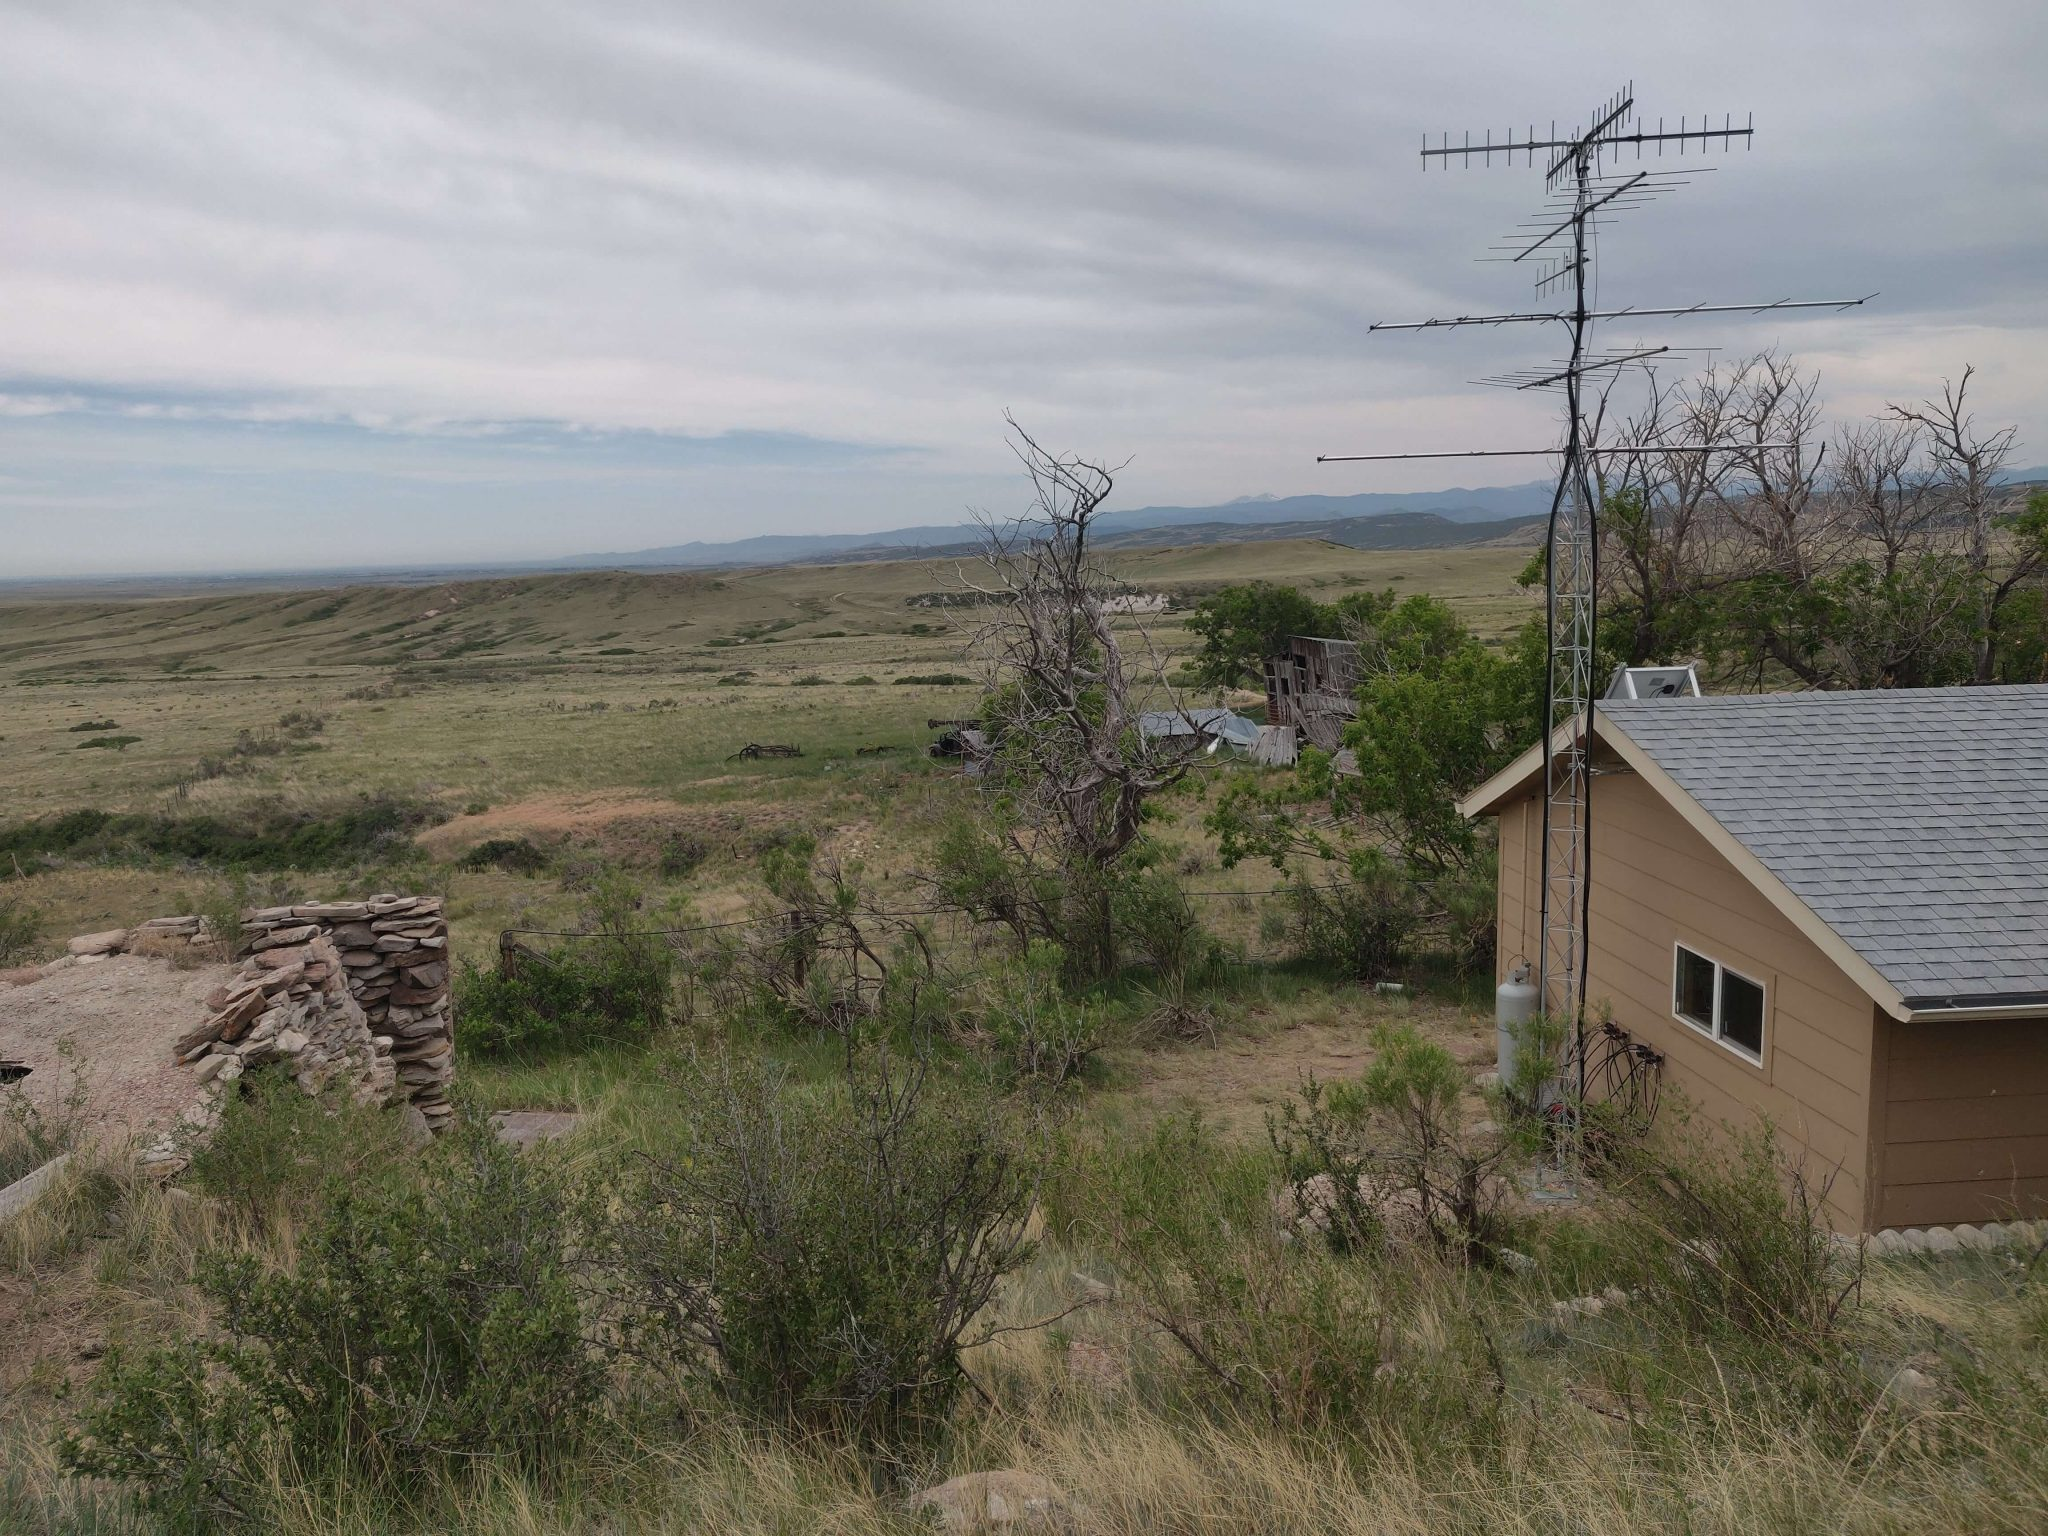 Photo of a Motus station at Soapstone Prairie Natural Area, in northern Colorado.